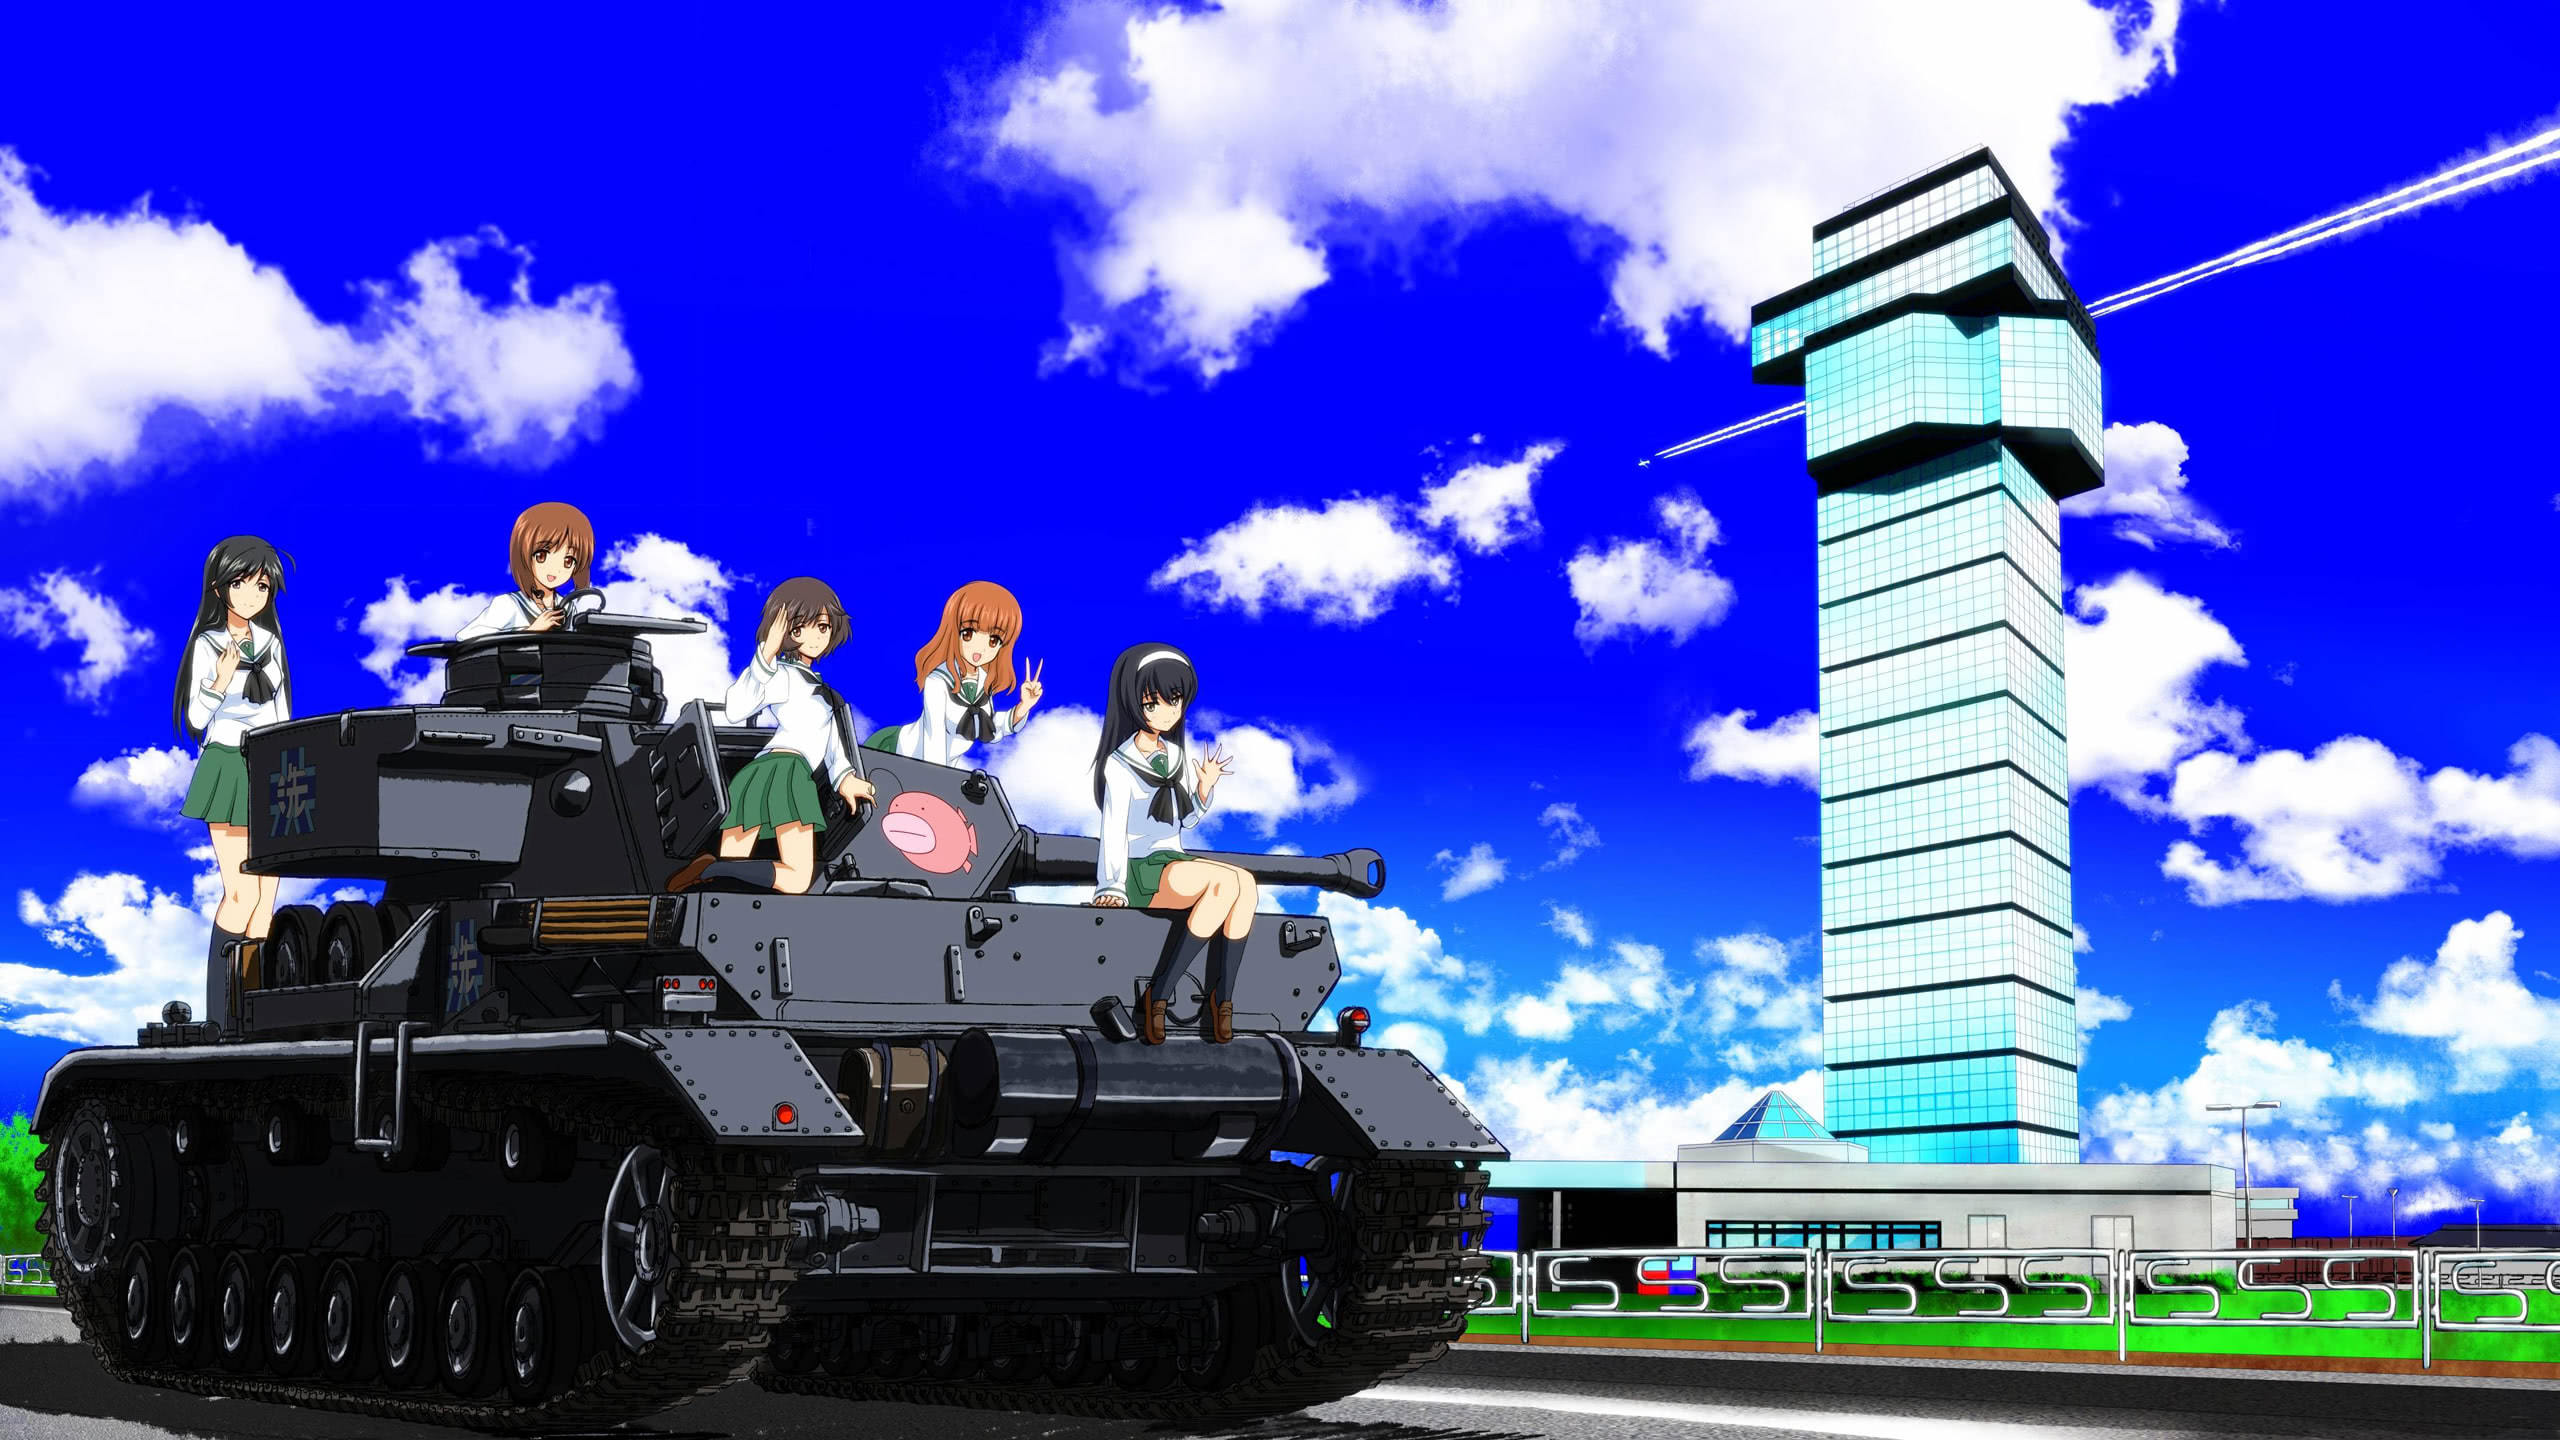 girls und panzer wqhd 1440p wallpaper